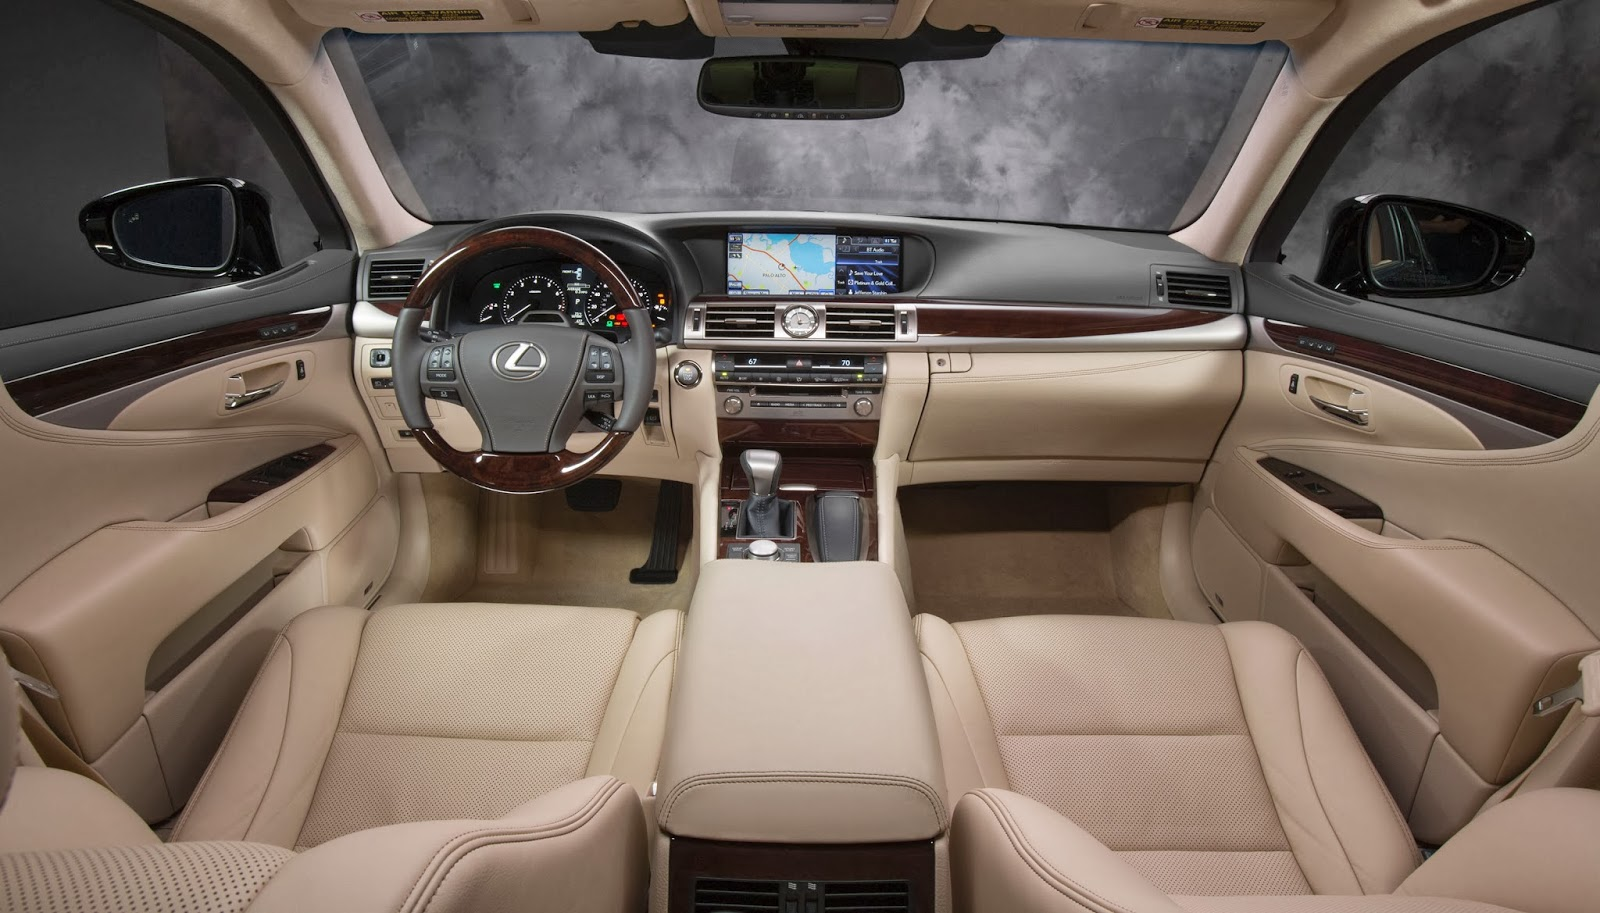 The 2014 Lexus LS 460 interior: Leather, leather everywhere.